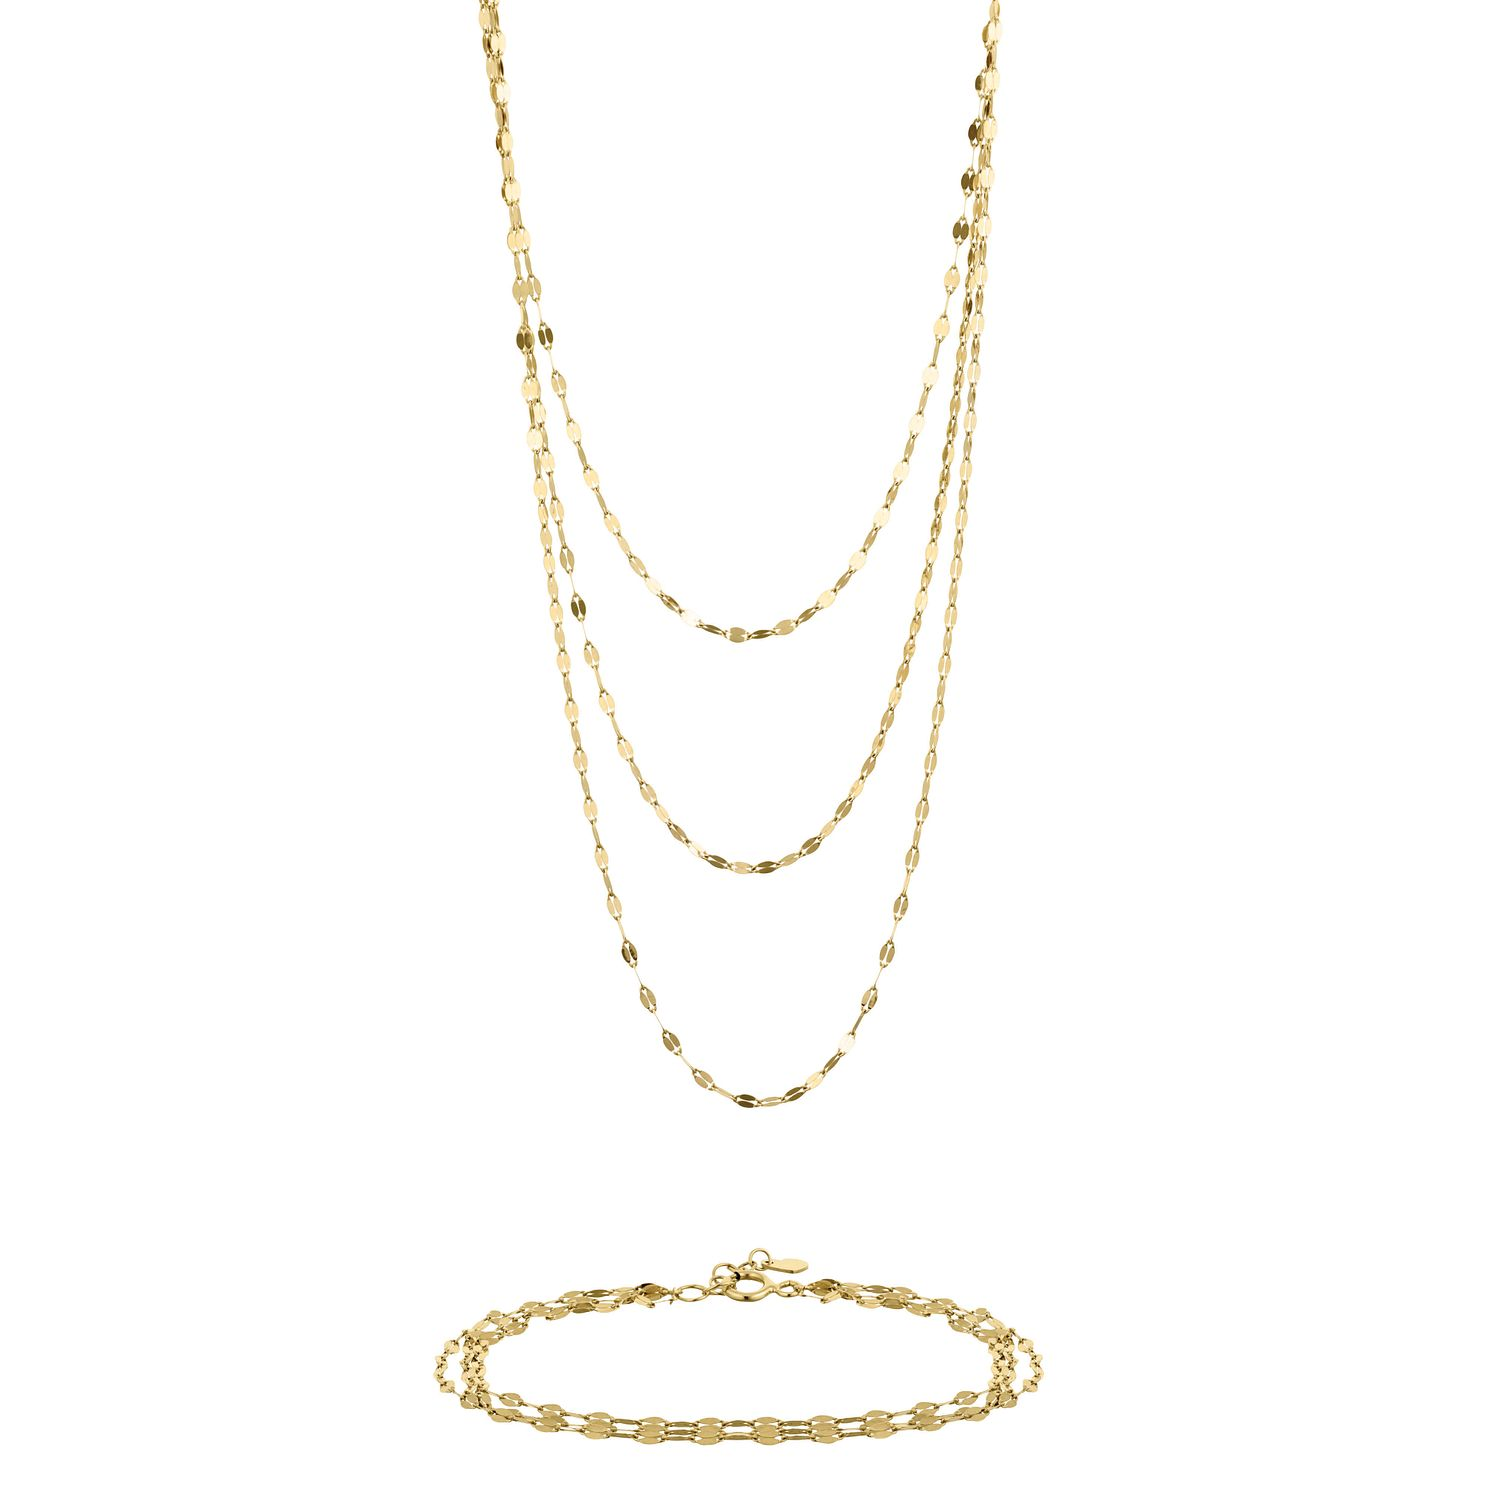 9ct Yellow Gold Draped Necklace & Bracelet Set - Product number 9663304